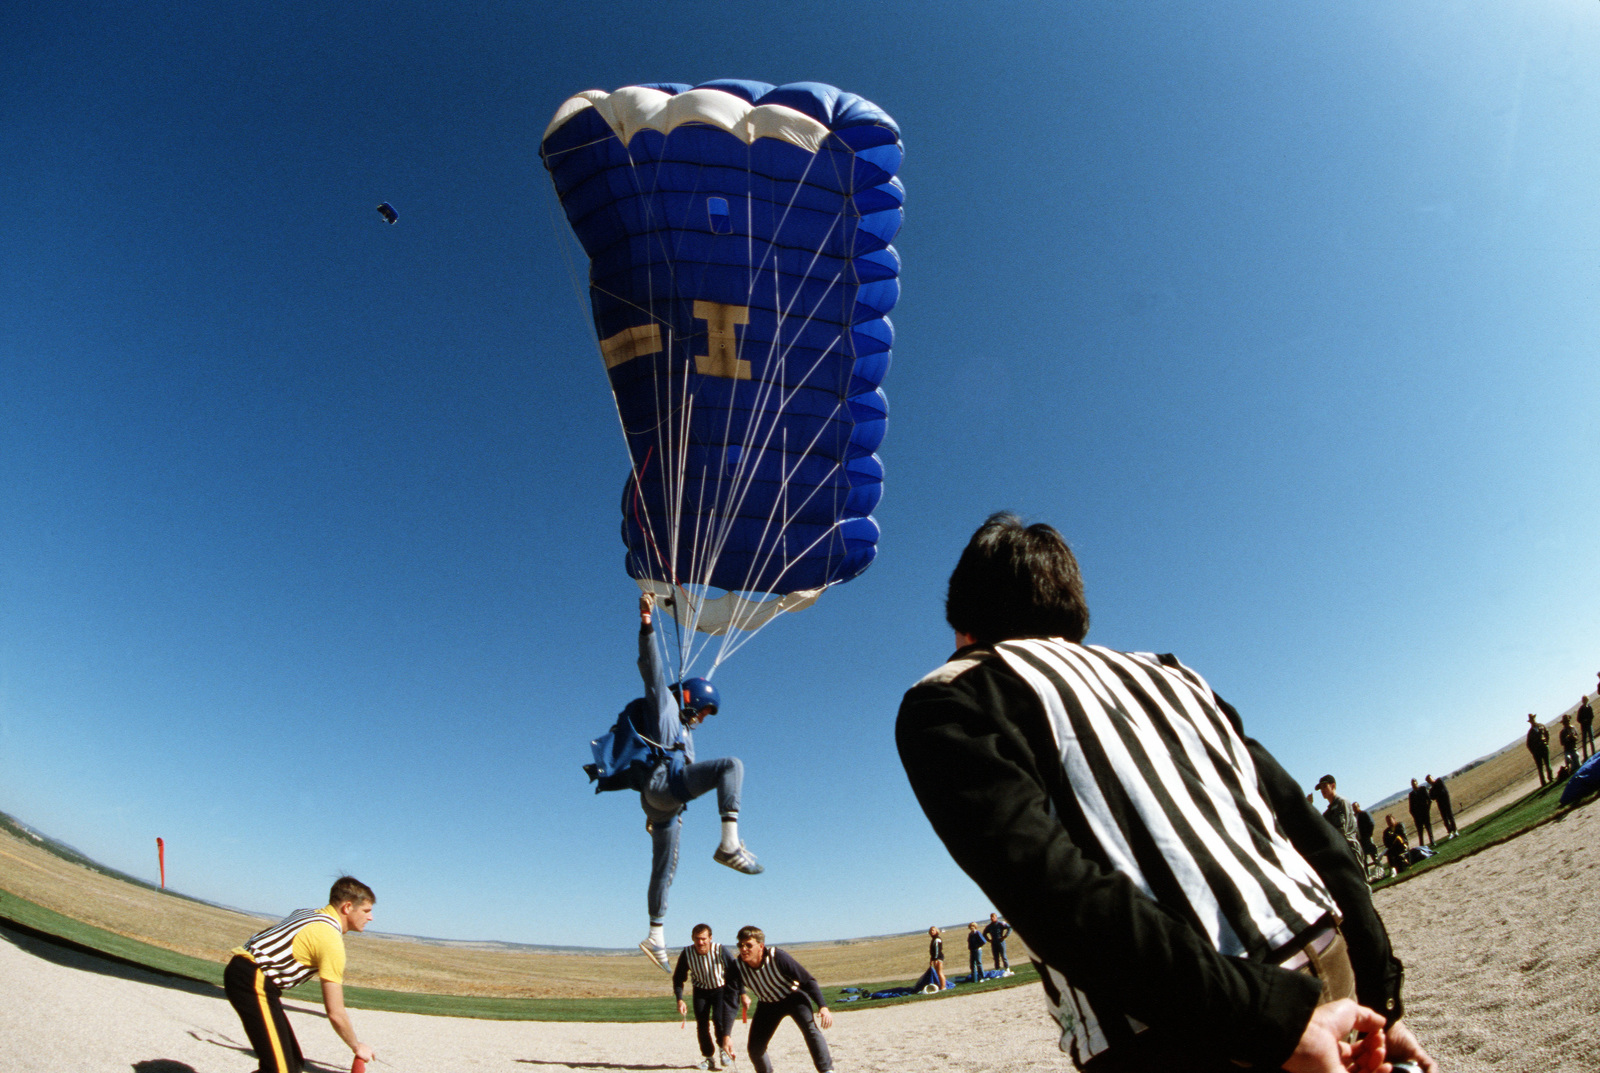 A service school parachute team member maneuvers to hit a metal disc in the target circle during the 1980 Tri-Service Parachute Tournament